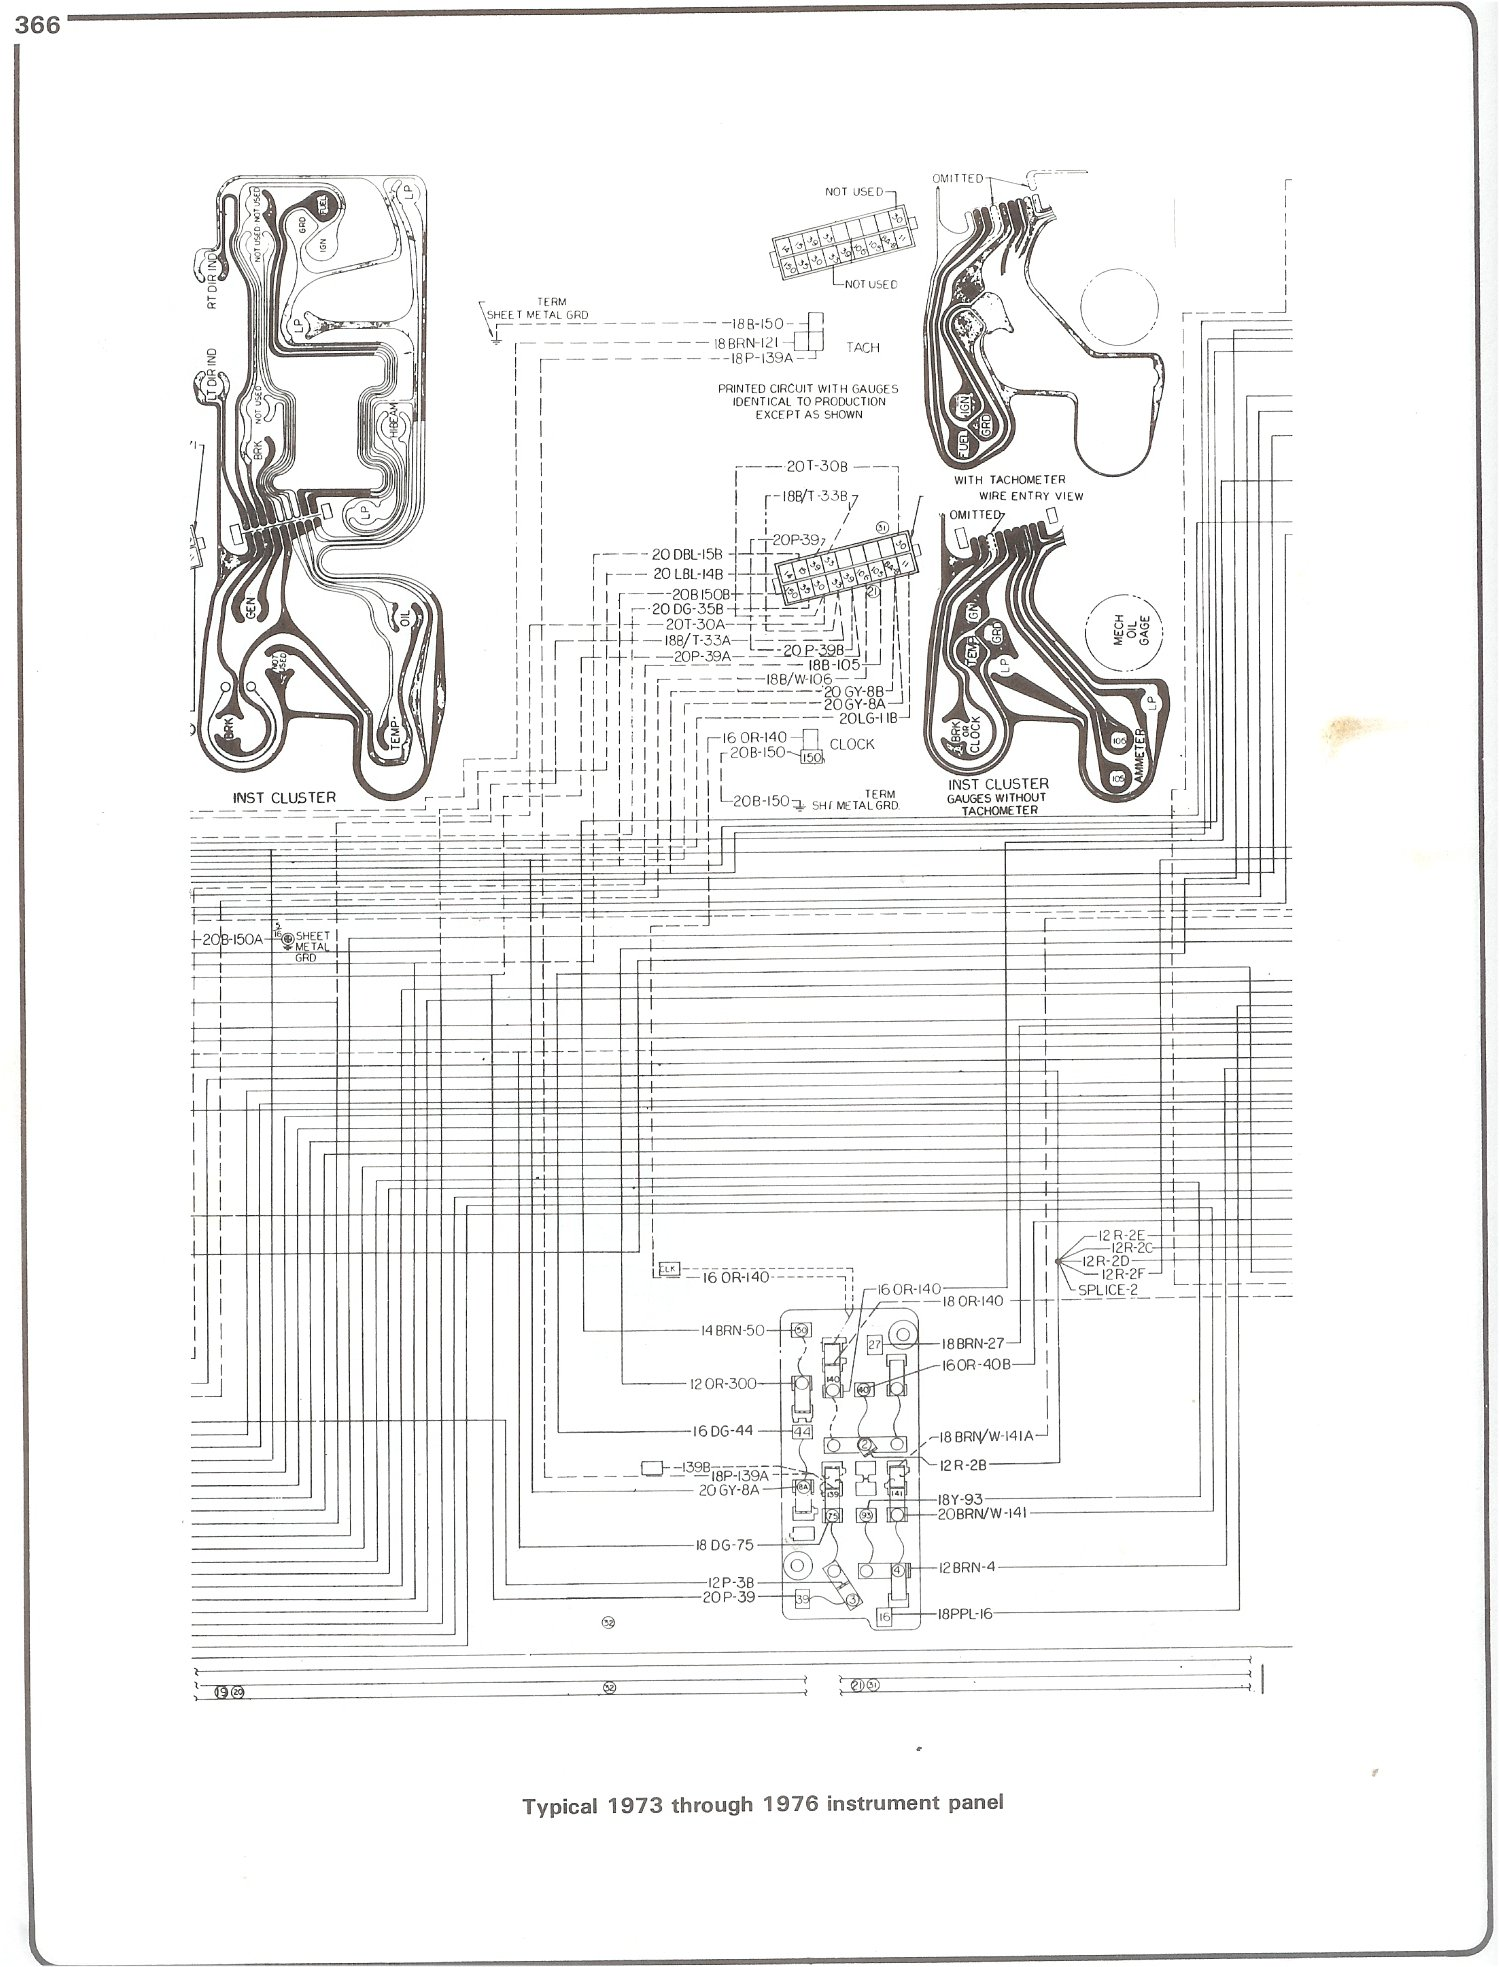 73 76_instrument complete 73 87 wiring diagrams 1982 chevy truck engine wiring diagram at alyssarenee.co